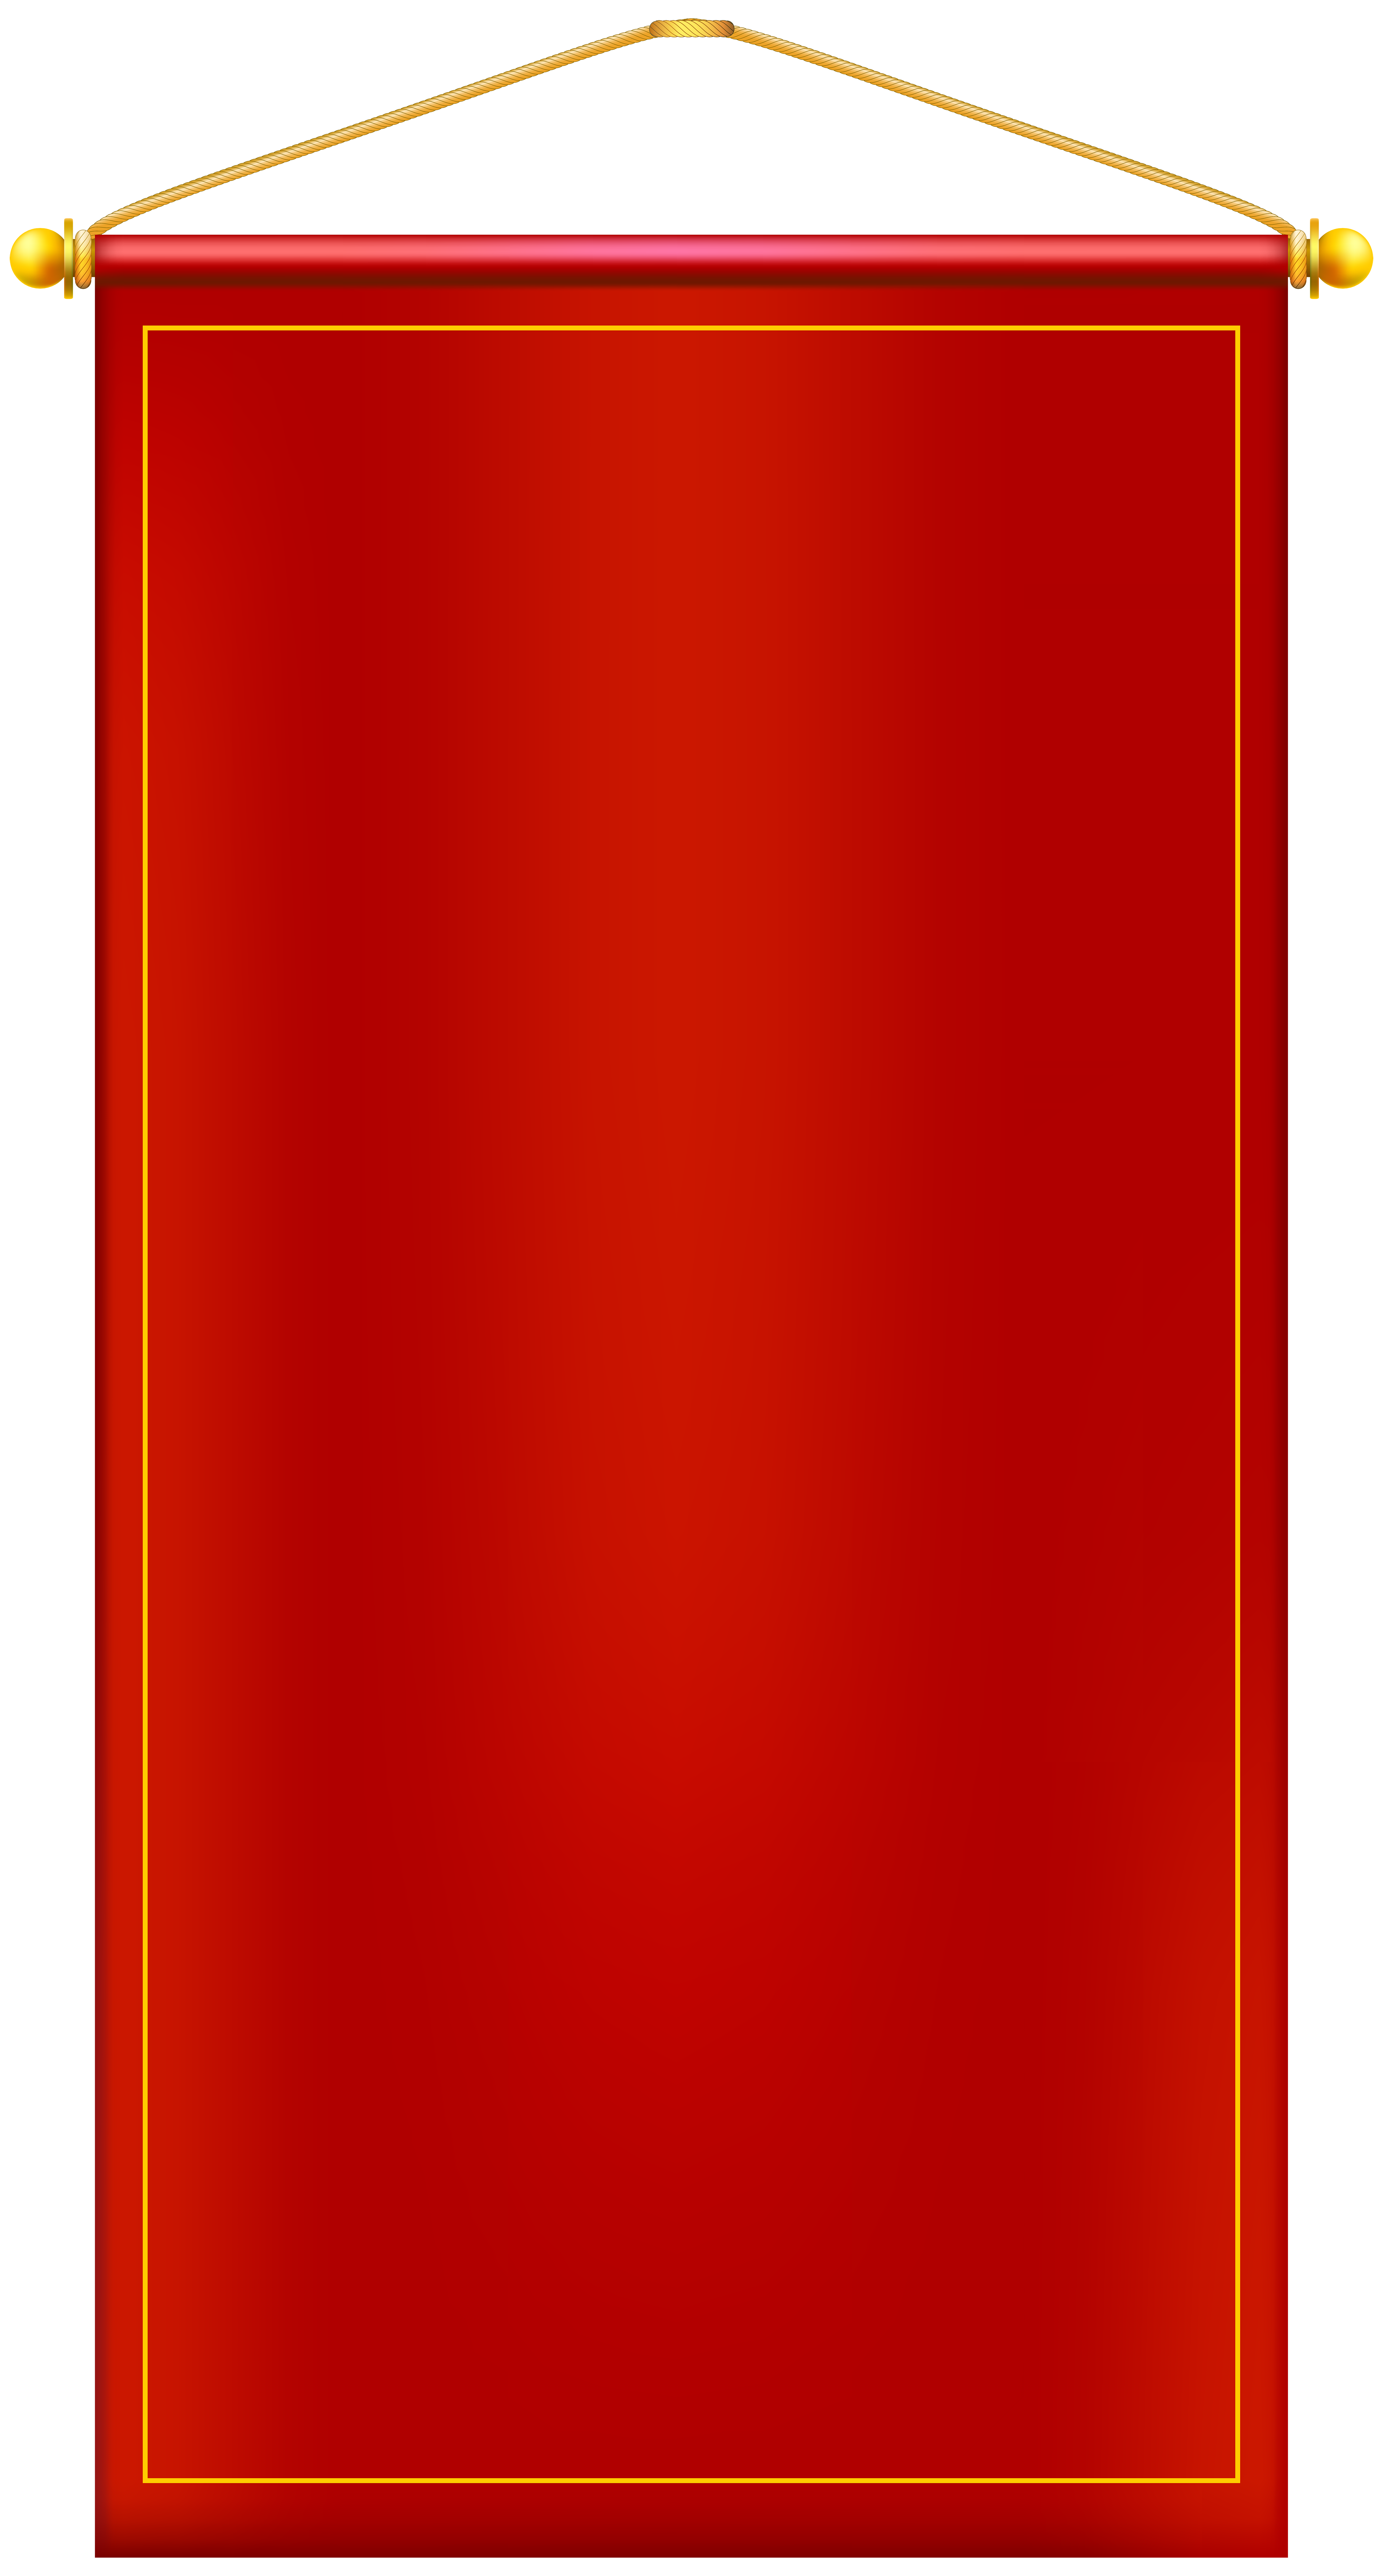 Vertical Red Banner PNG Clip Art Image.